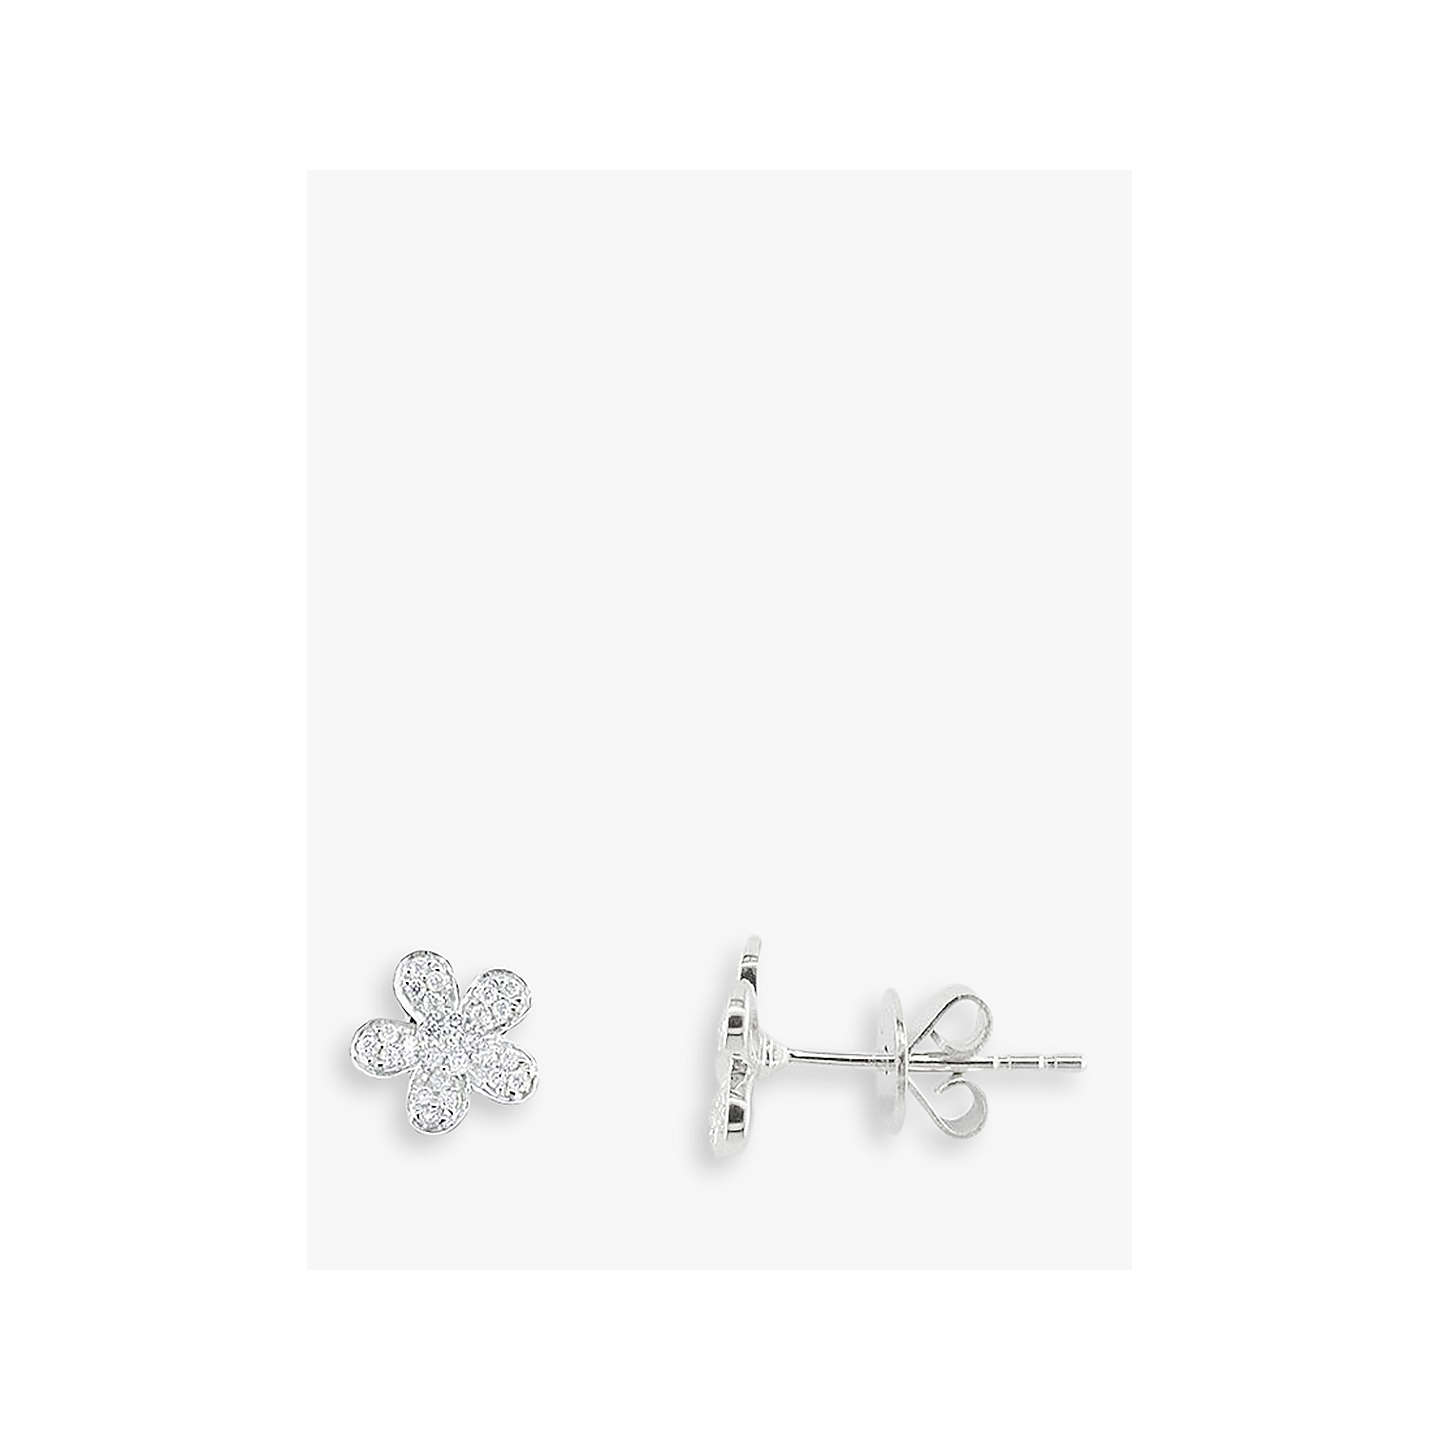 earring flower jewelrieshop pins colors jewelry handcrafted big assorted stud com steel studs stainless rose amazon dp